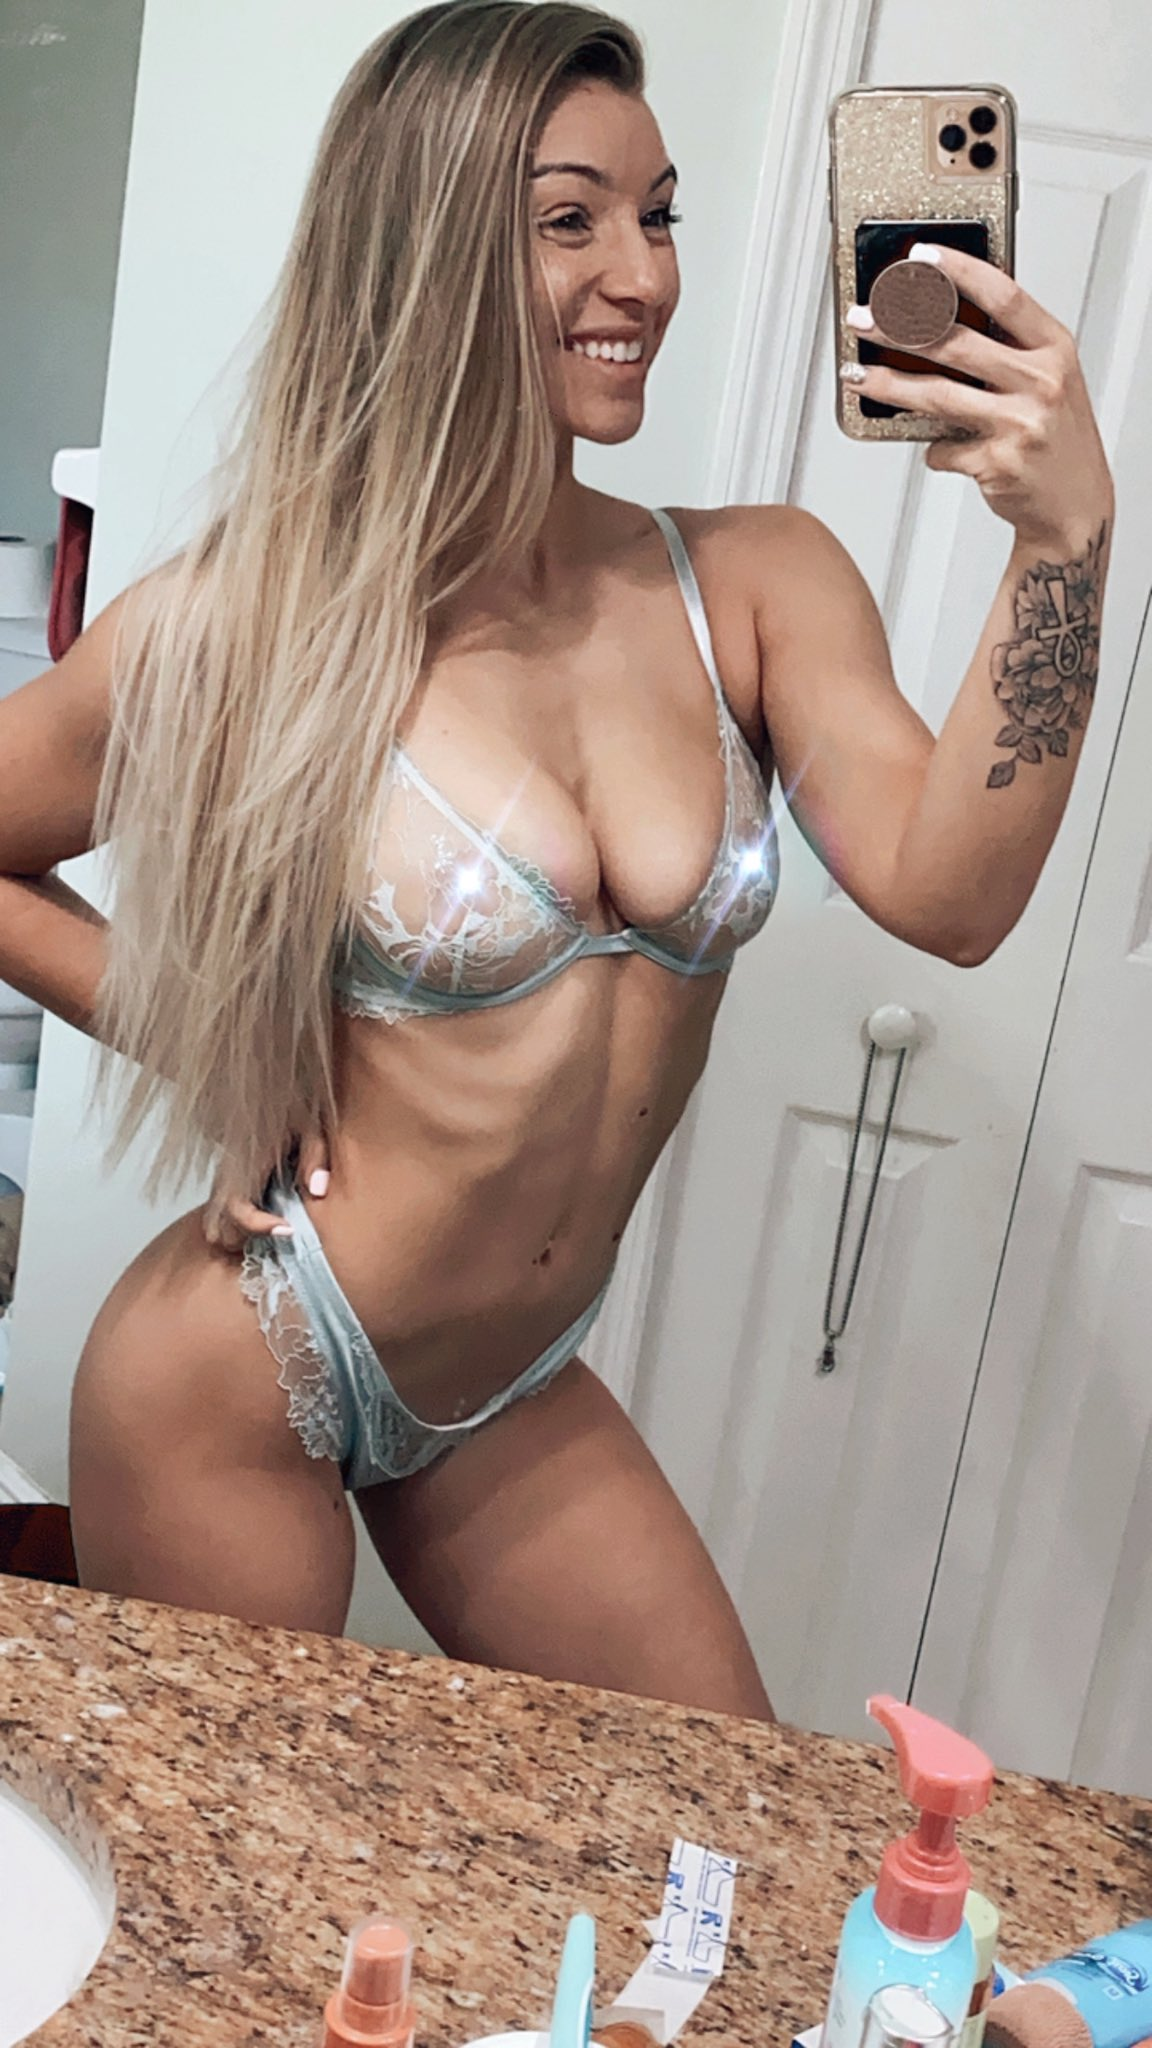 Therealbrittfit Nude Onlyfans Brittney Leaked! 0021